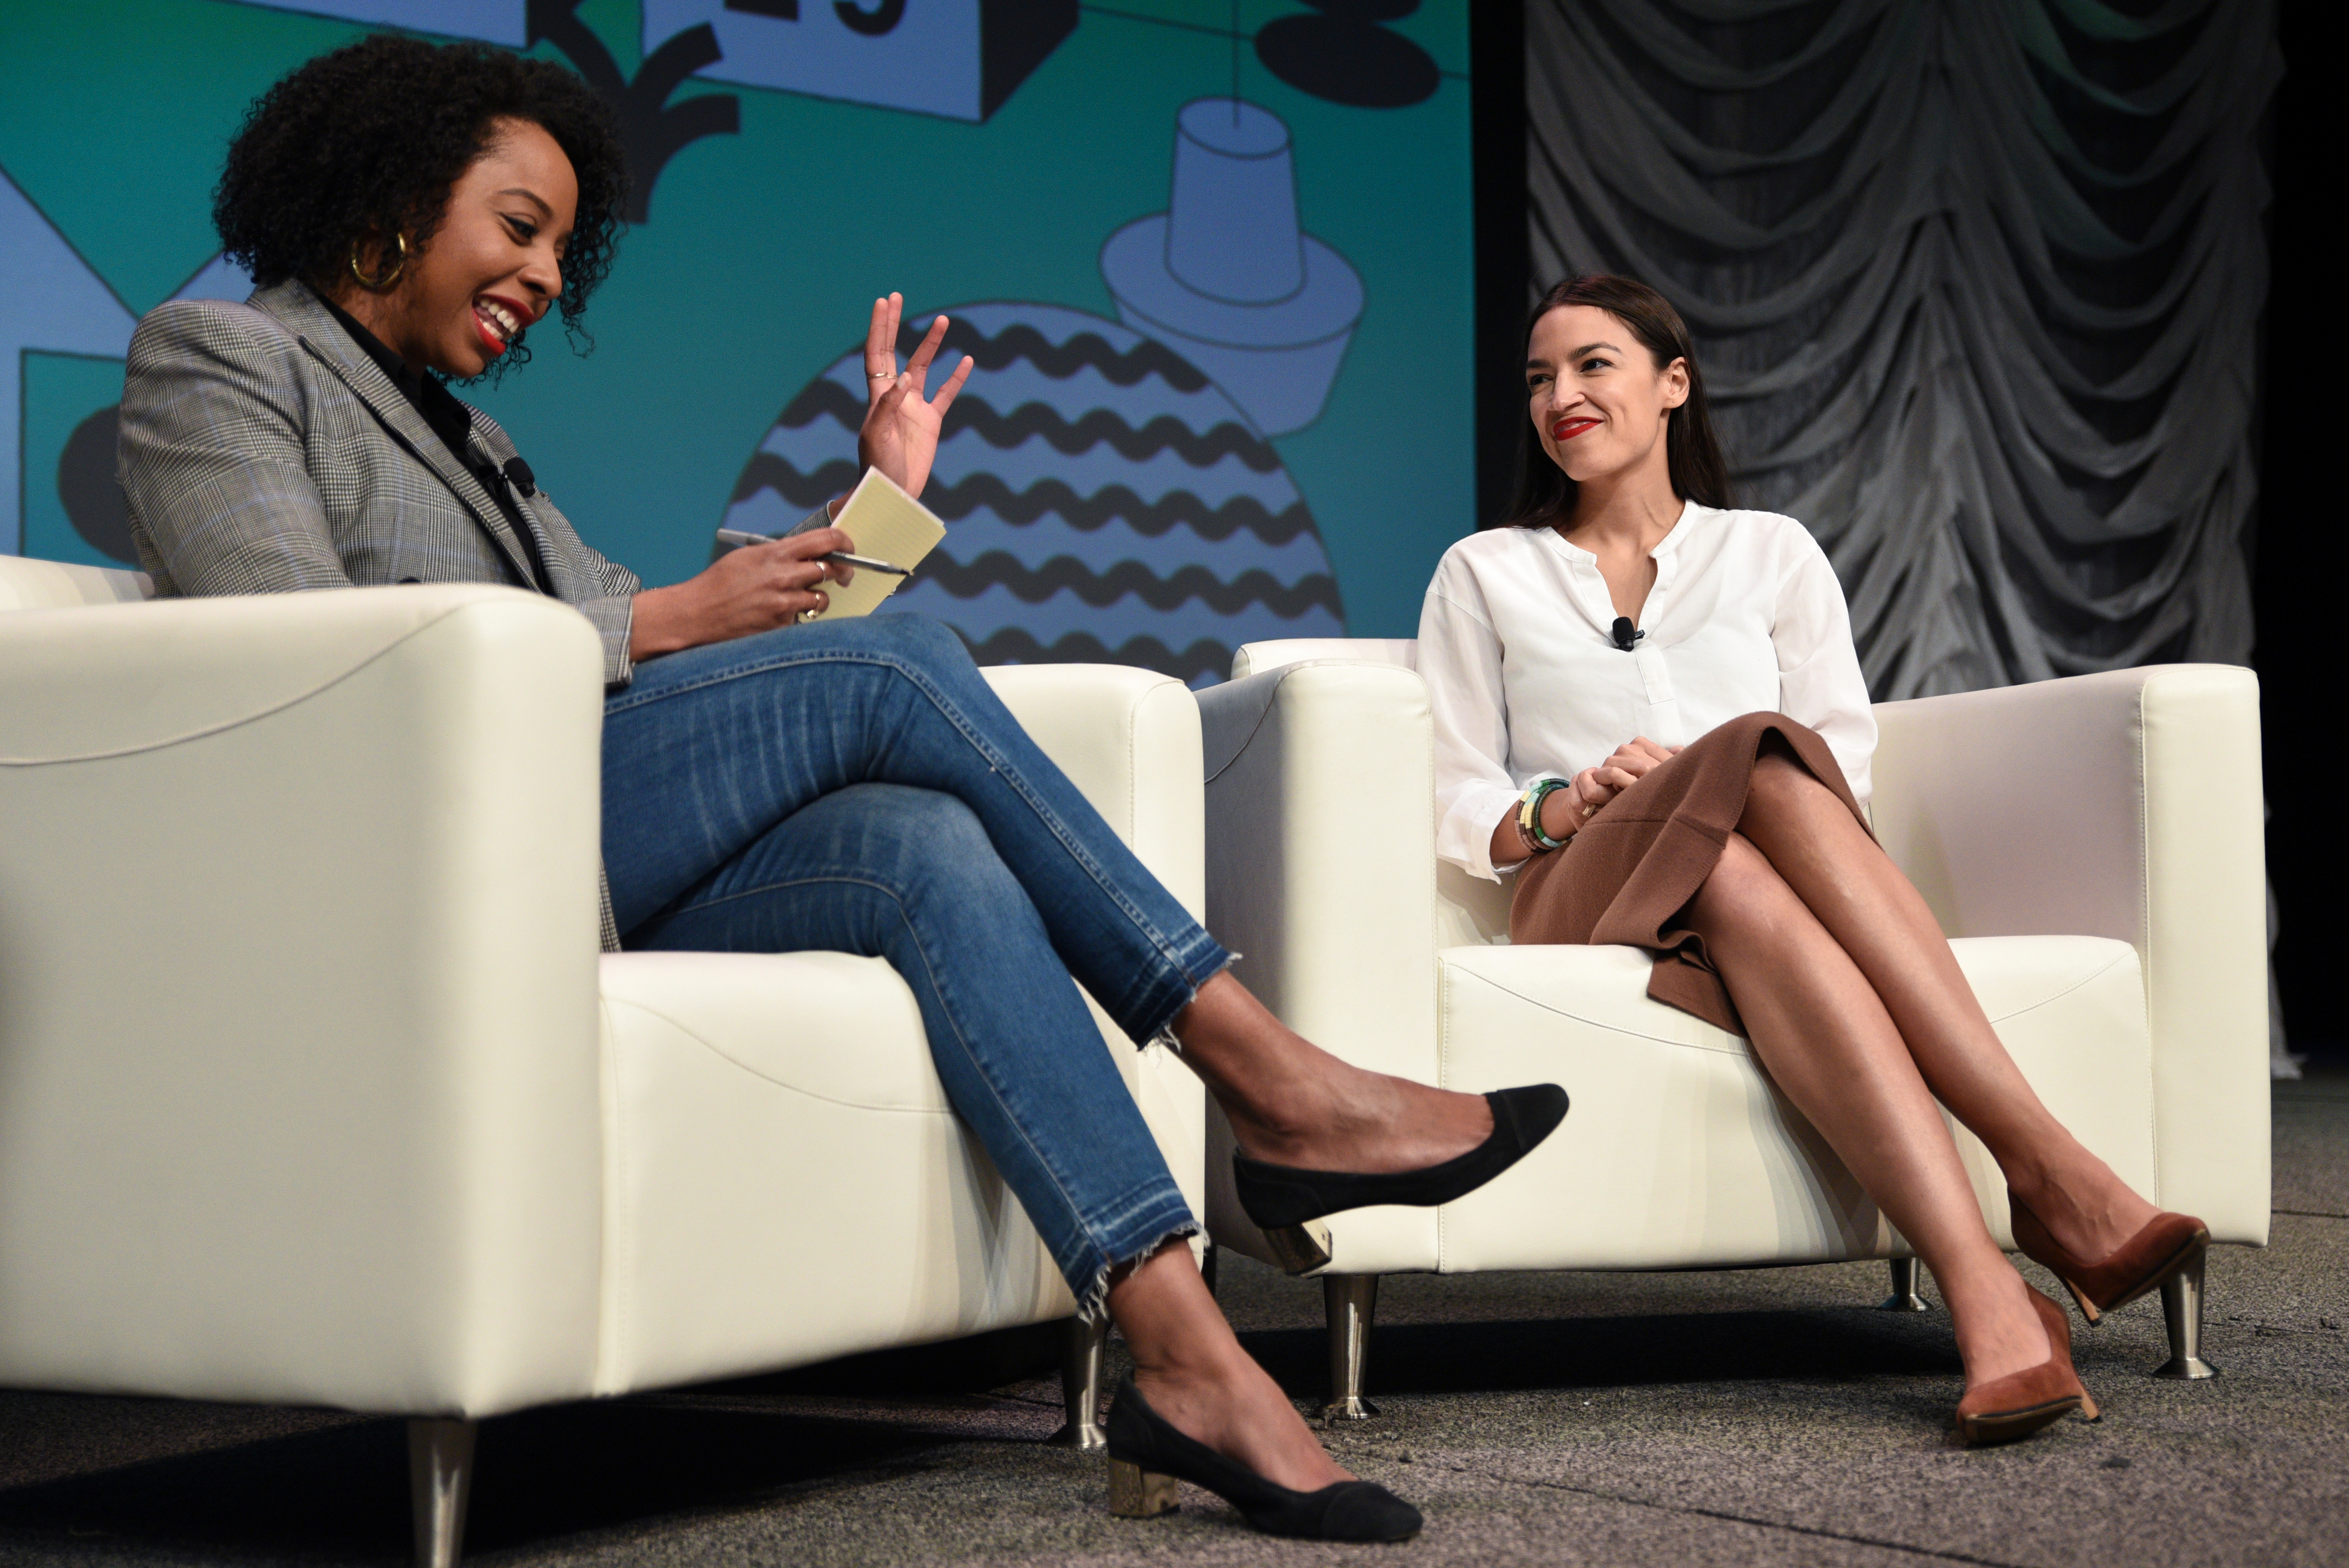 U.S. Congresswoman Alexandria Ocasio-Cortez speaks about the first few months of her tenure in congress with Briahna Gray at the South by Southwest (SXSW) conference and festivals in Austin, Texas, U.S., March 9, 2019. REUTERS/Sergio Flores